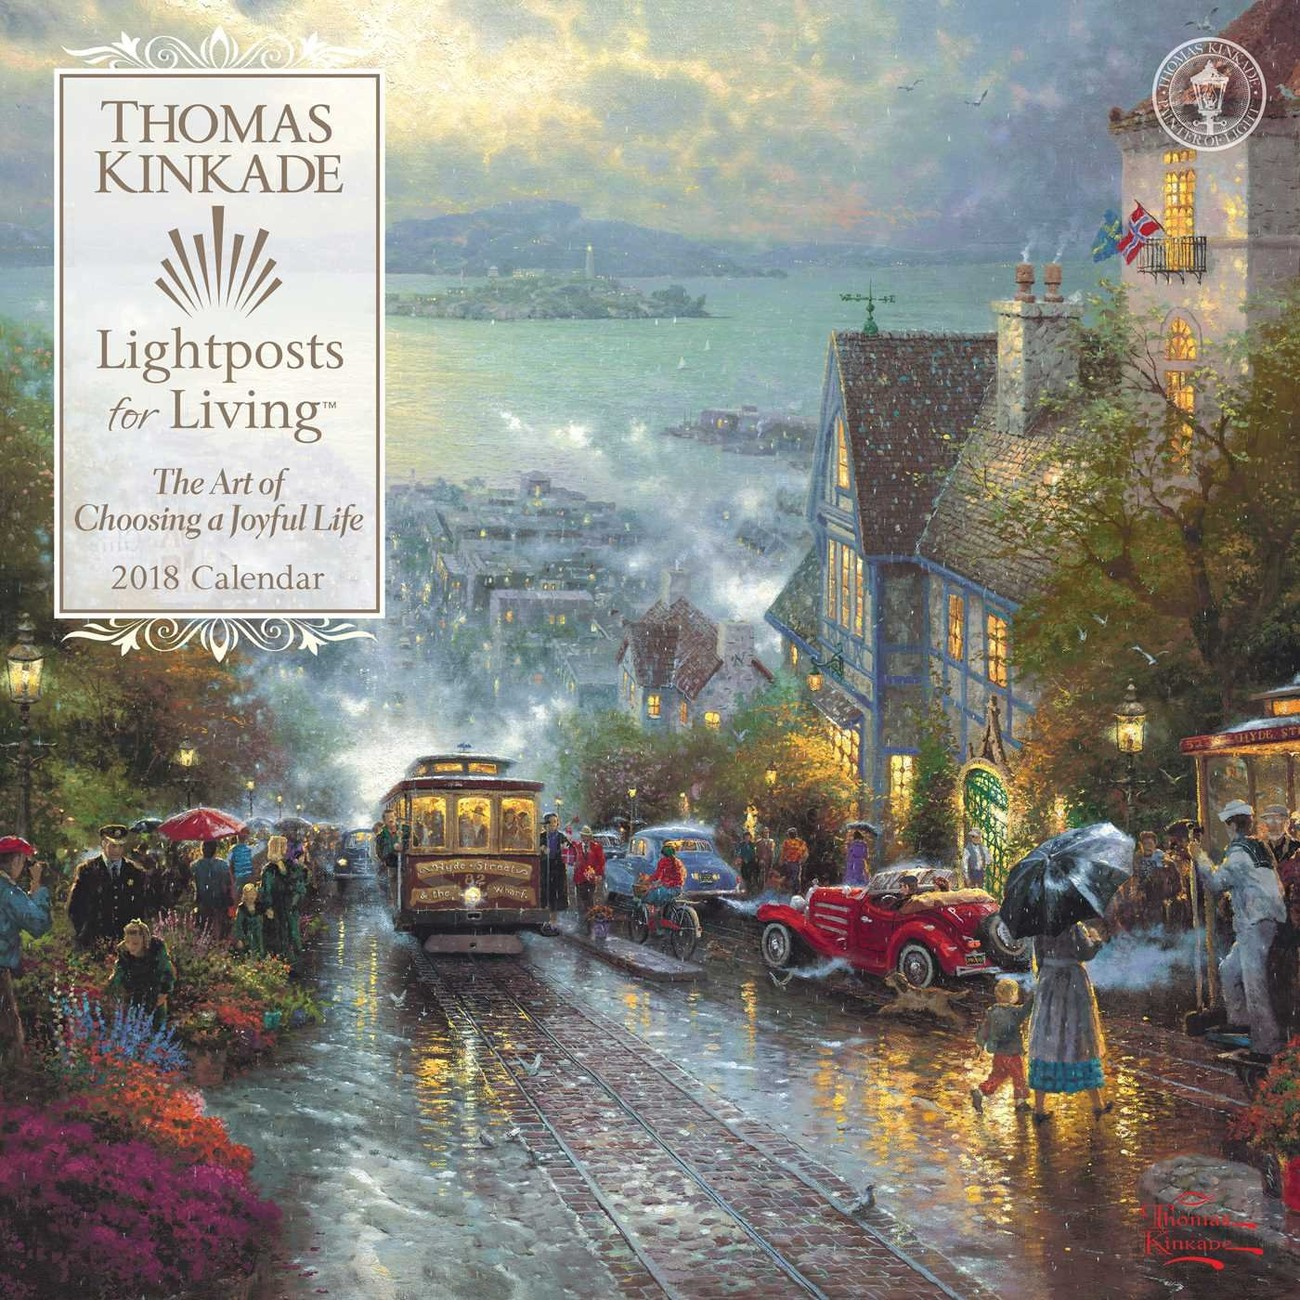 Thomas Kinkade Lightposts For Living Calendars 2020 On